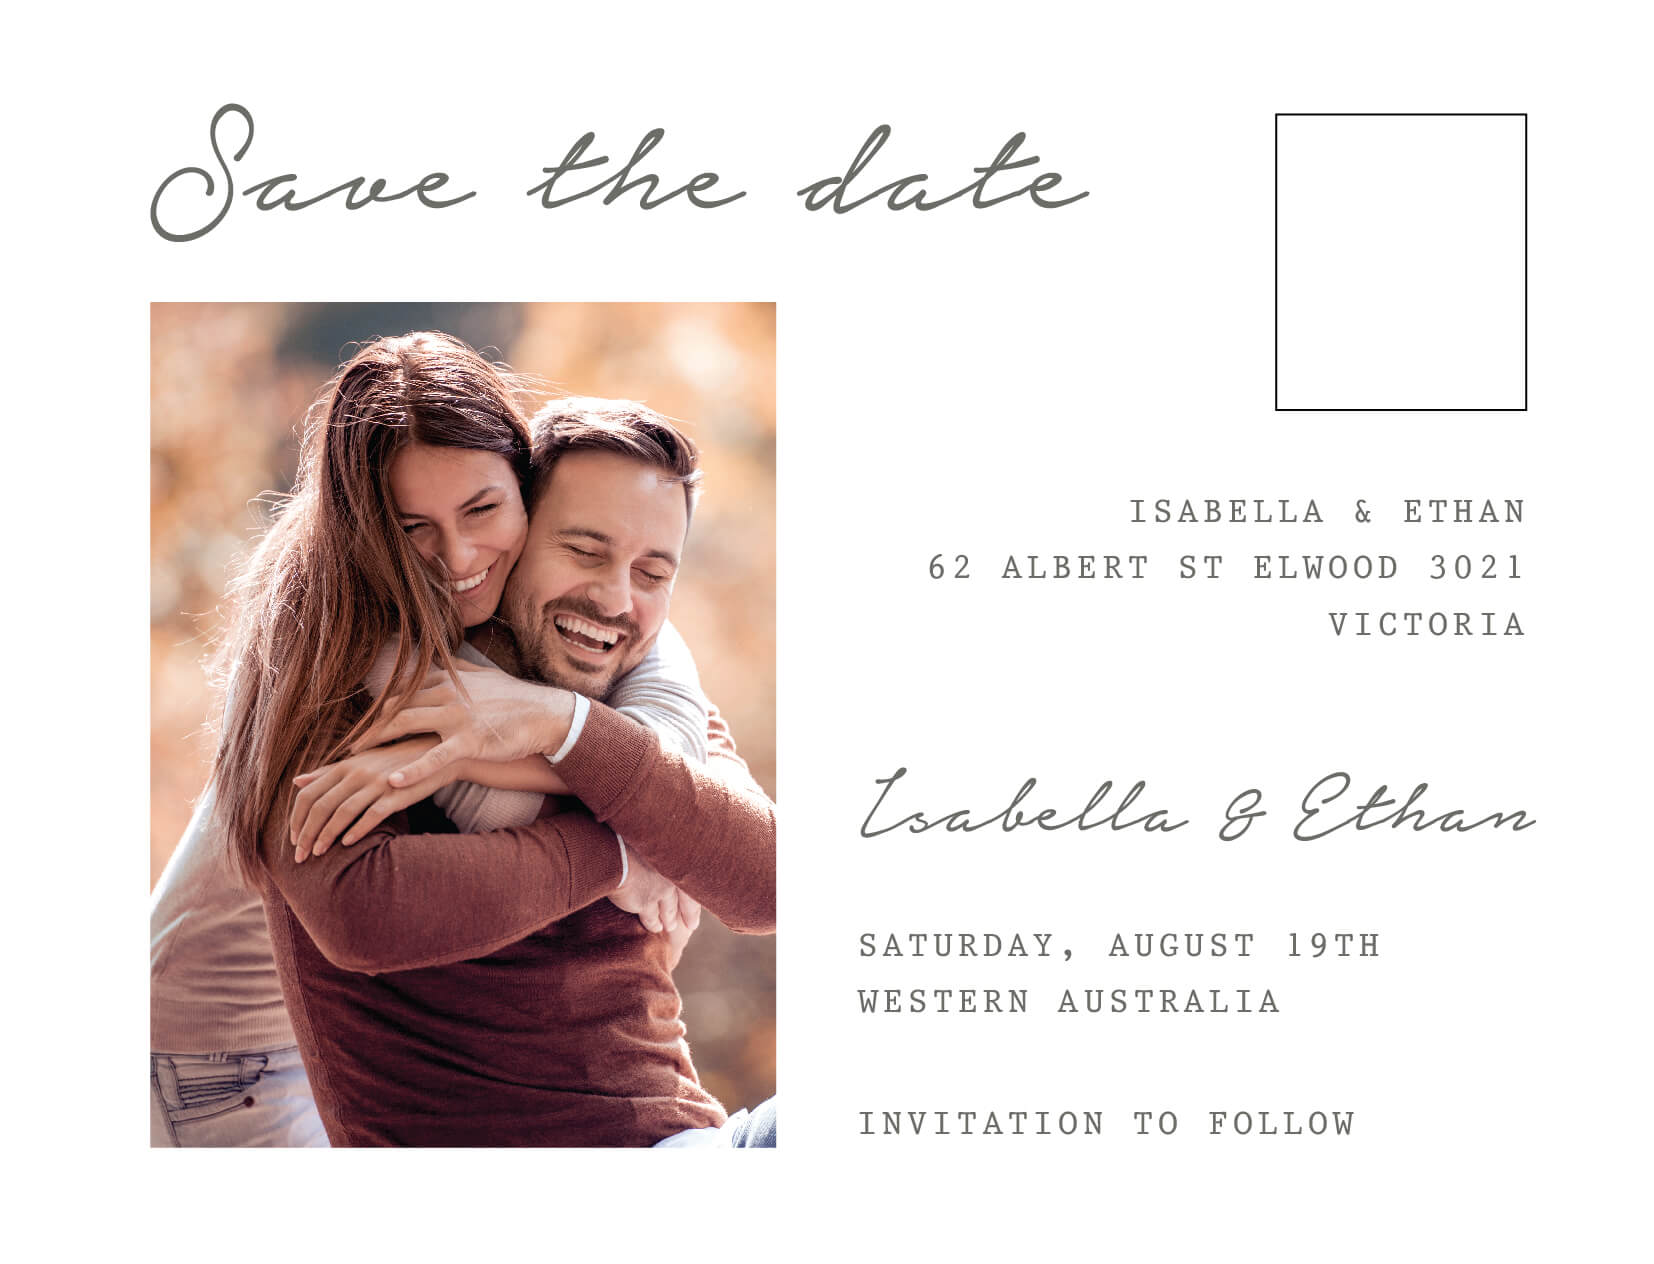 Classic Letter - Save The Date